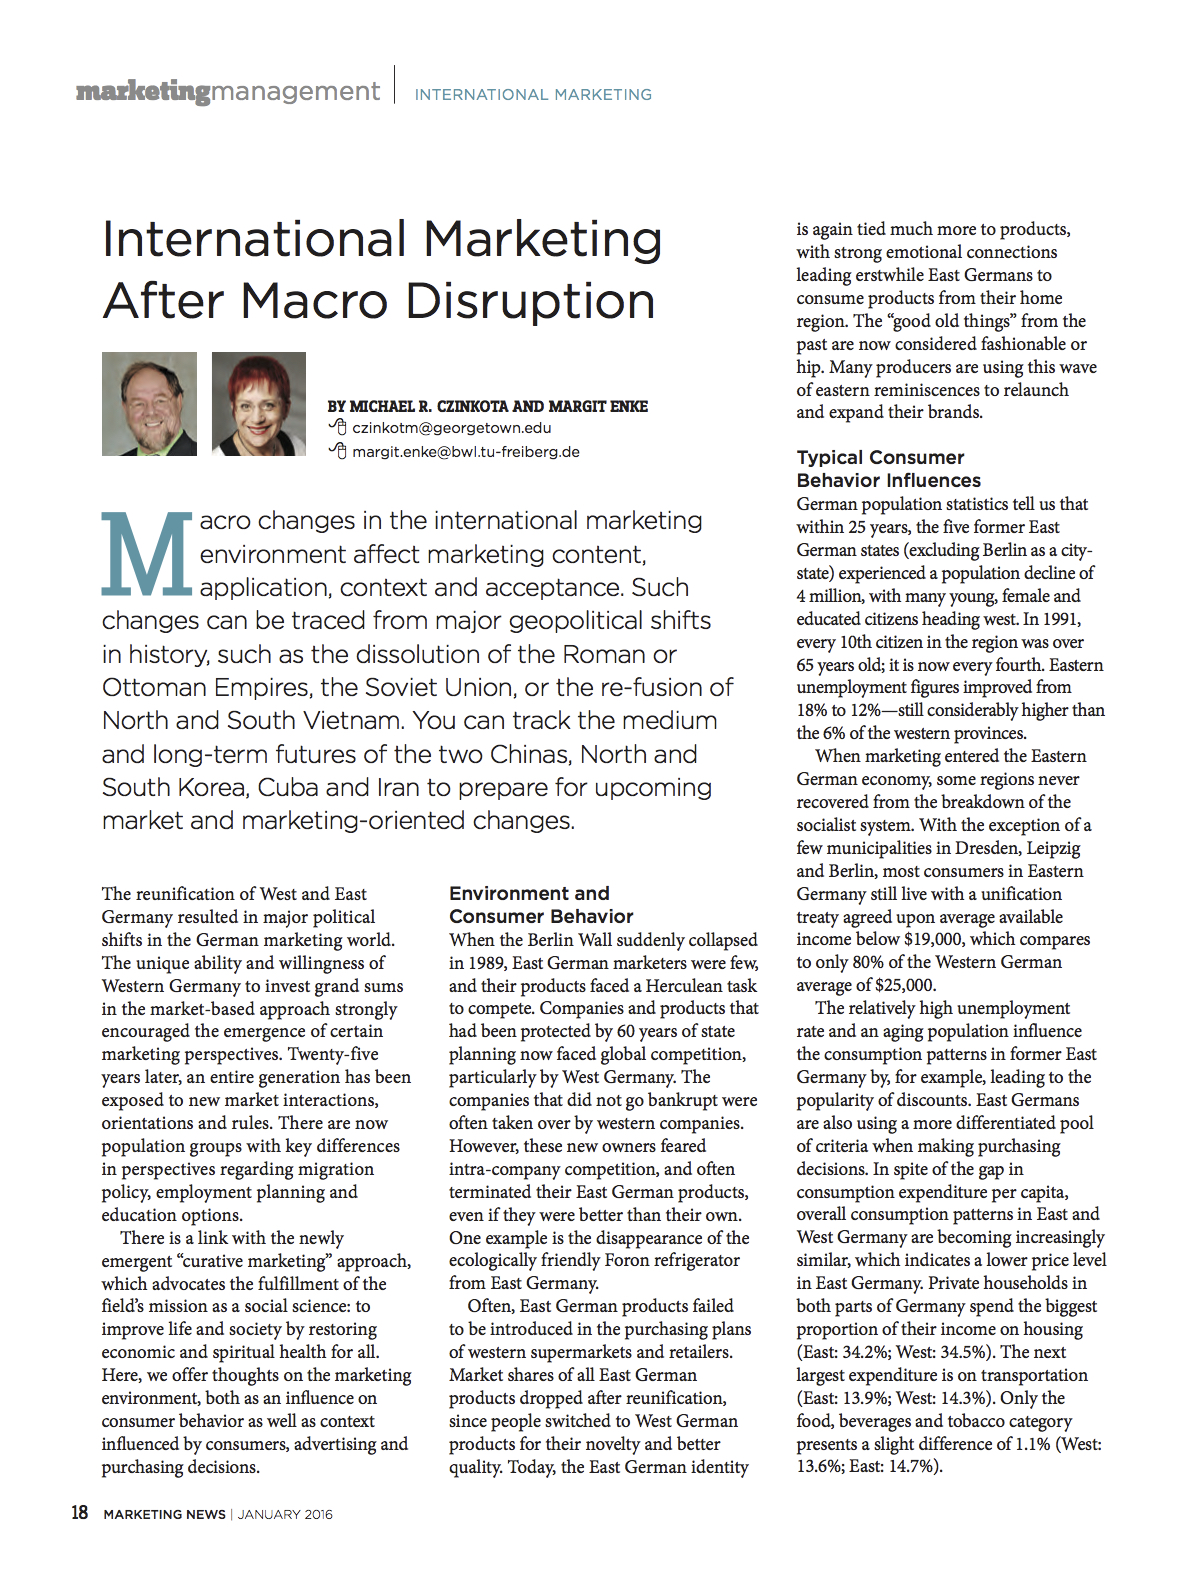 International Marketing After Macro Disruption